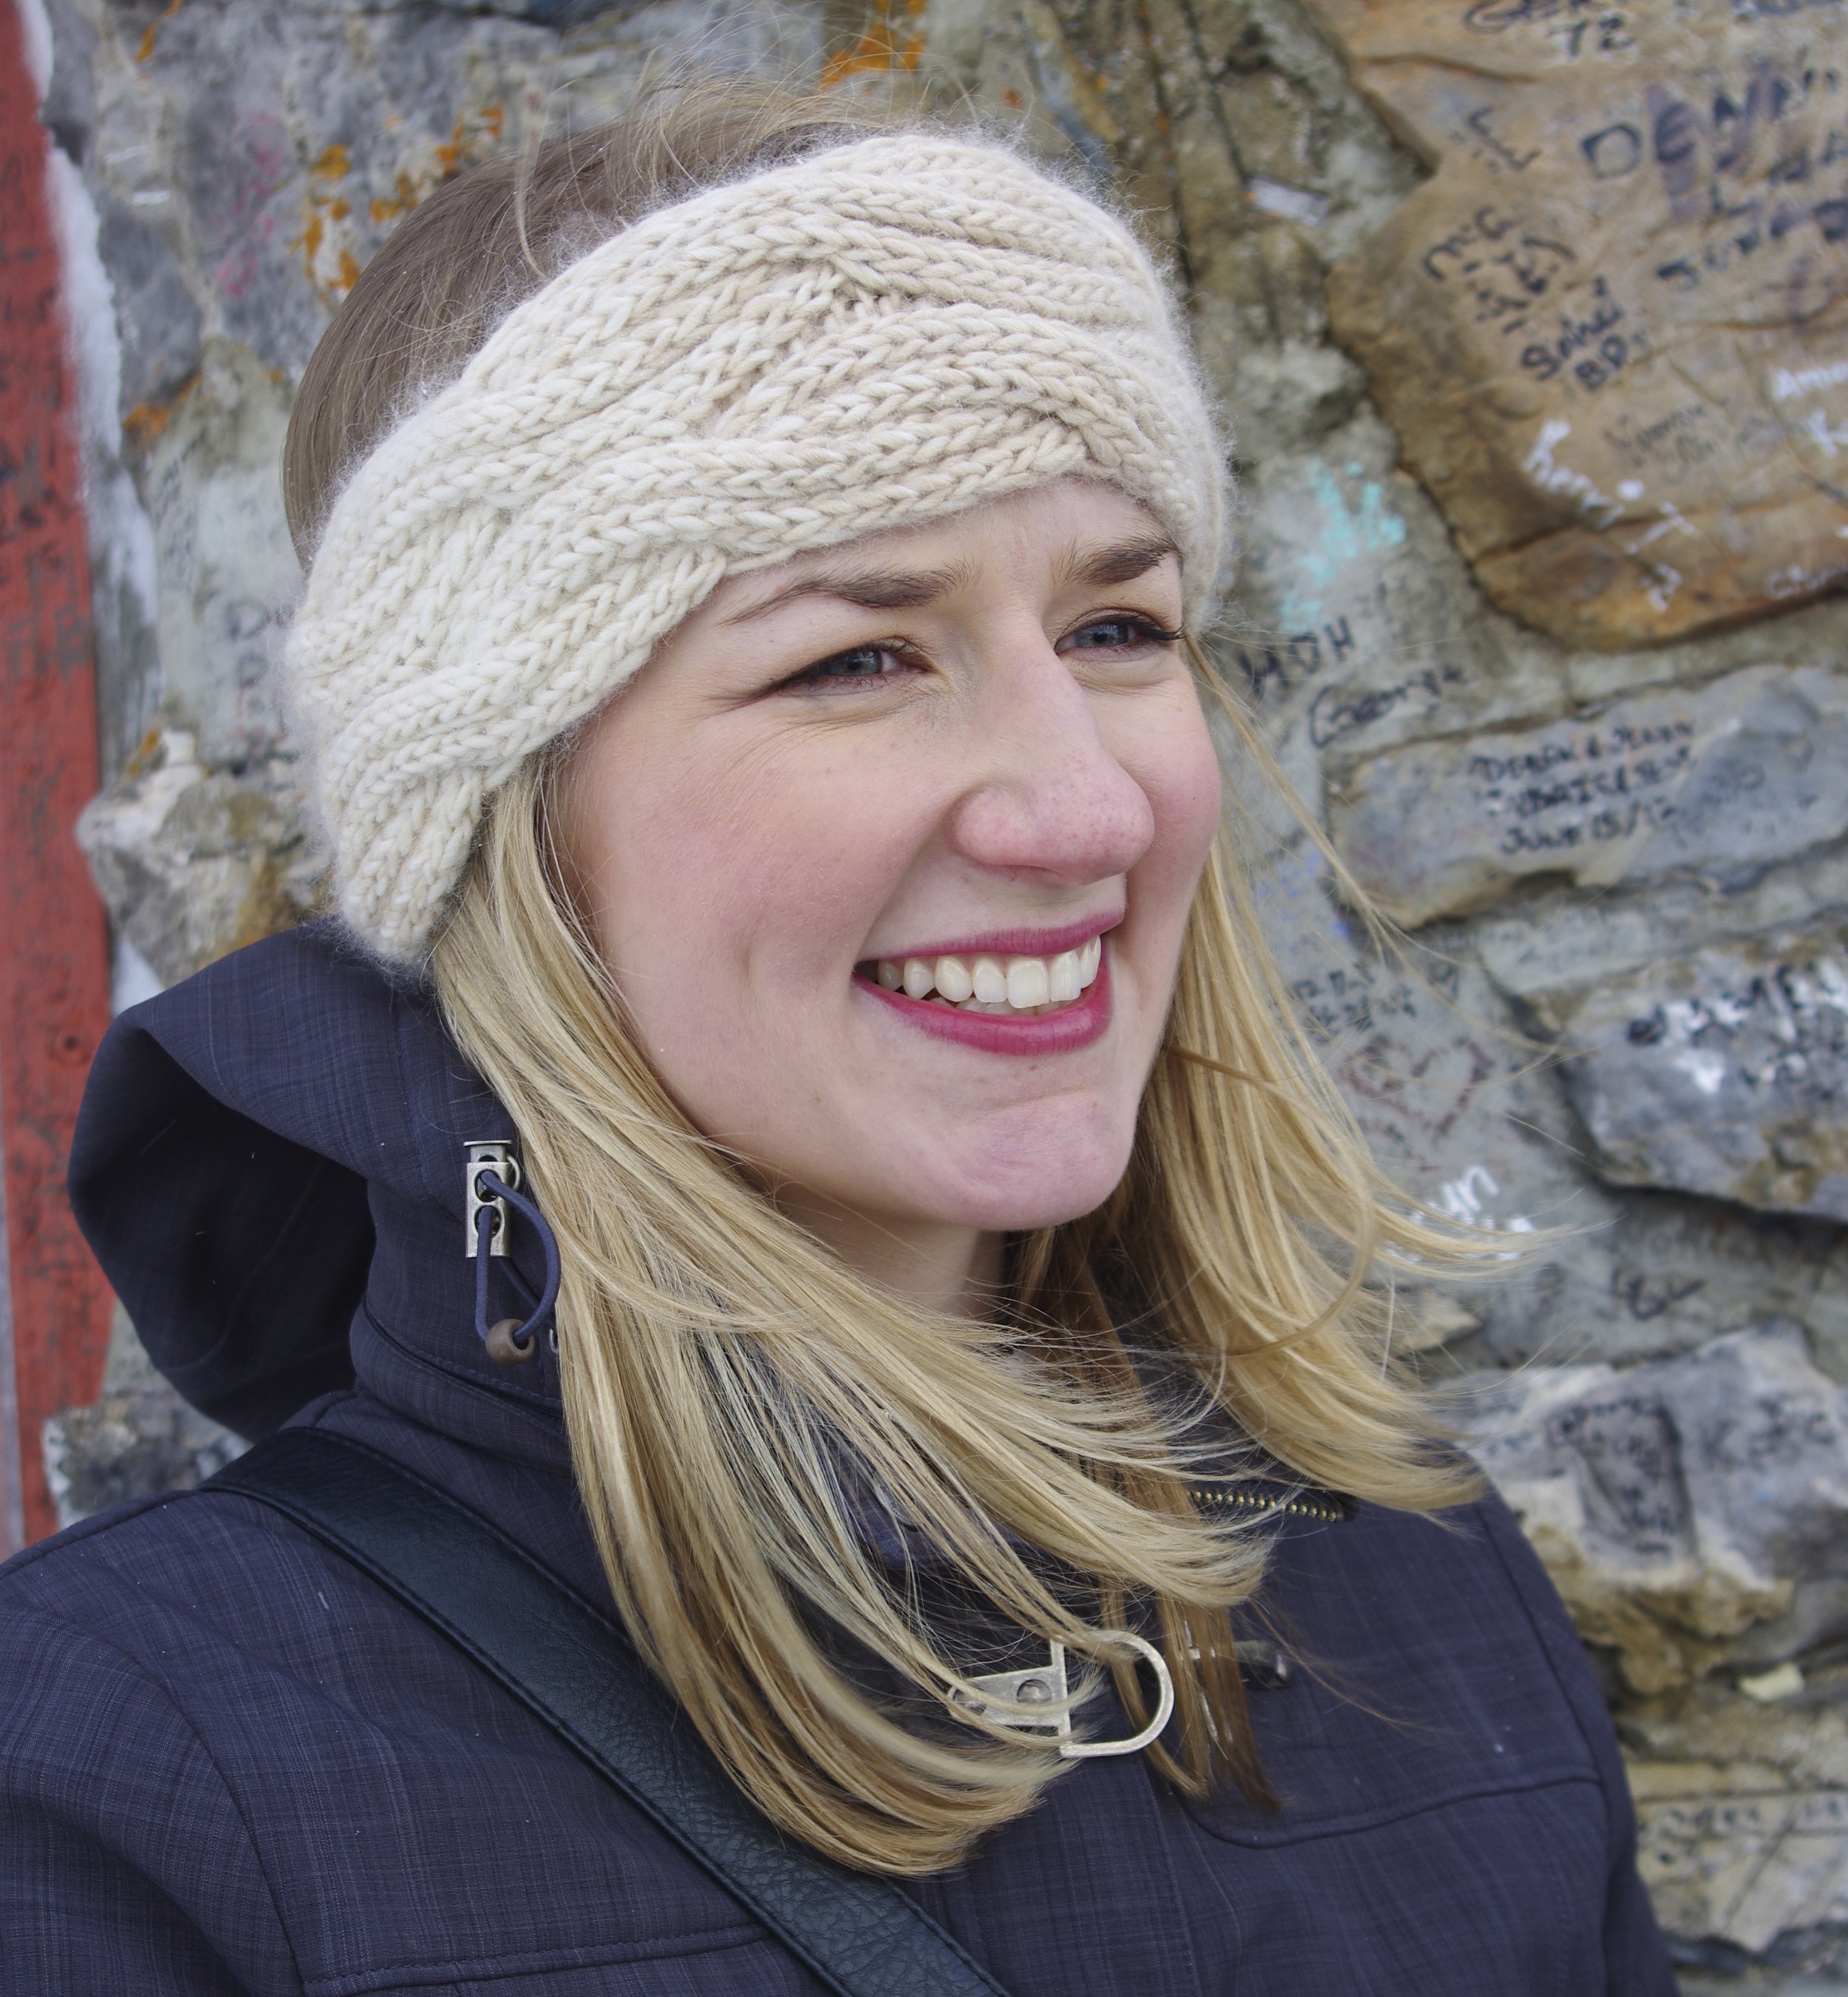 You will learn to knit reversible cables by using Fiona's pattern for this headband.